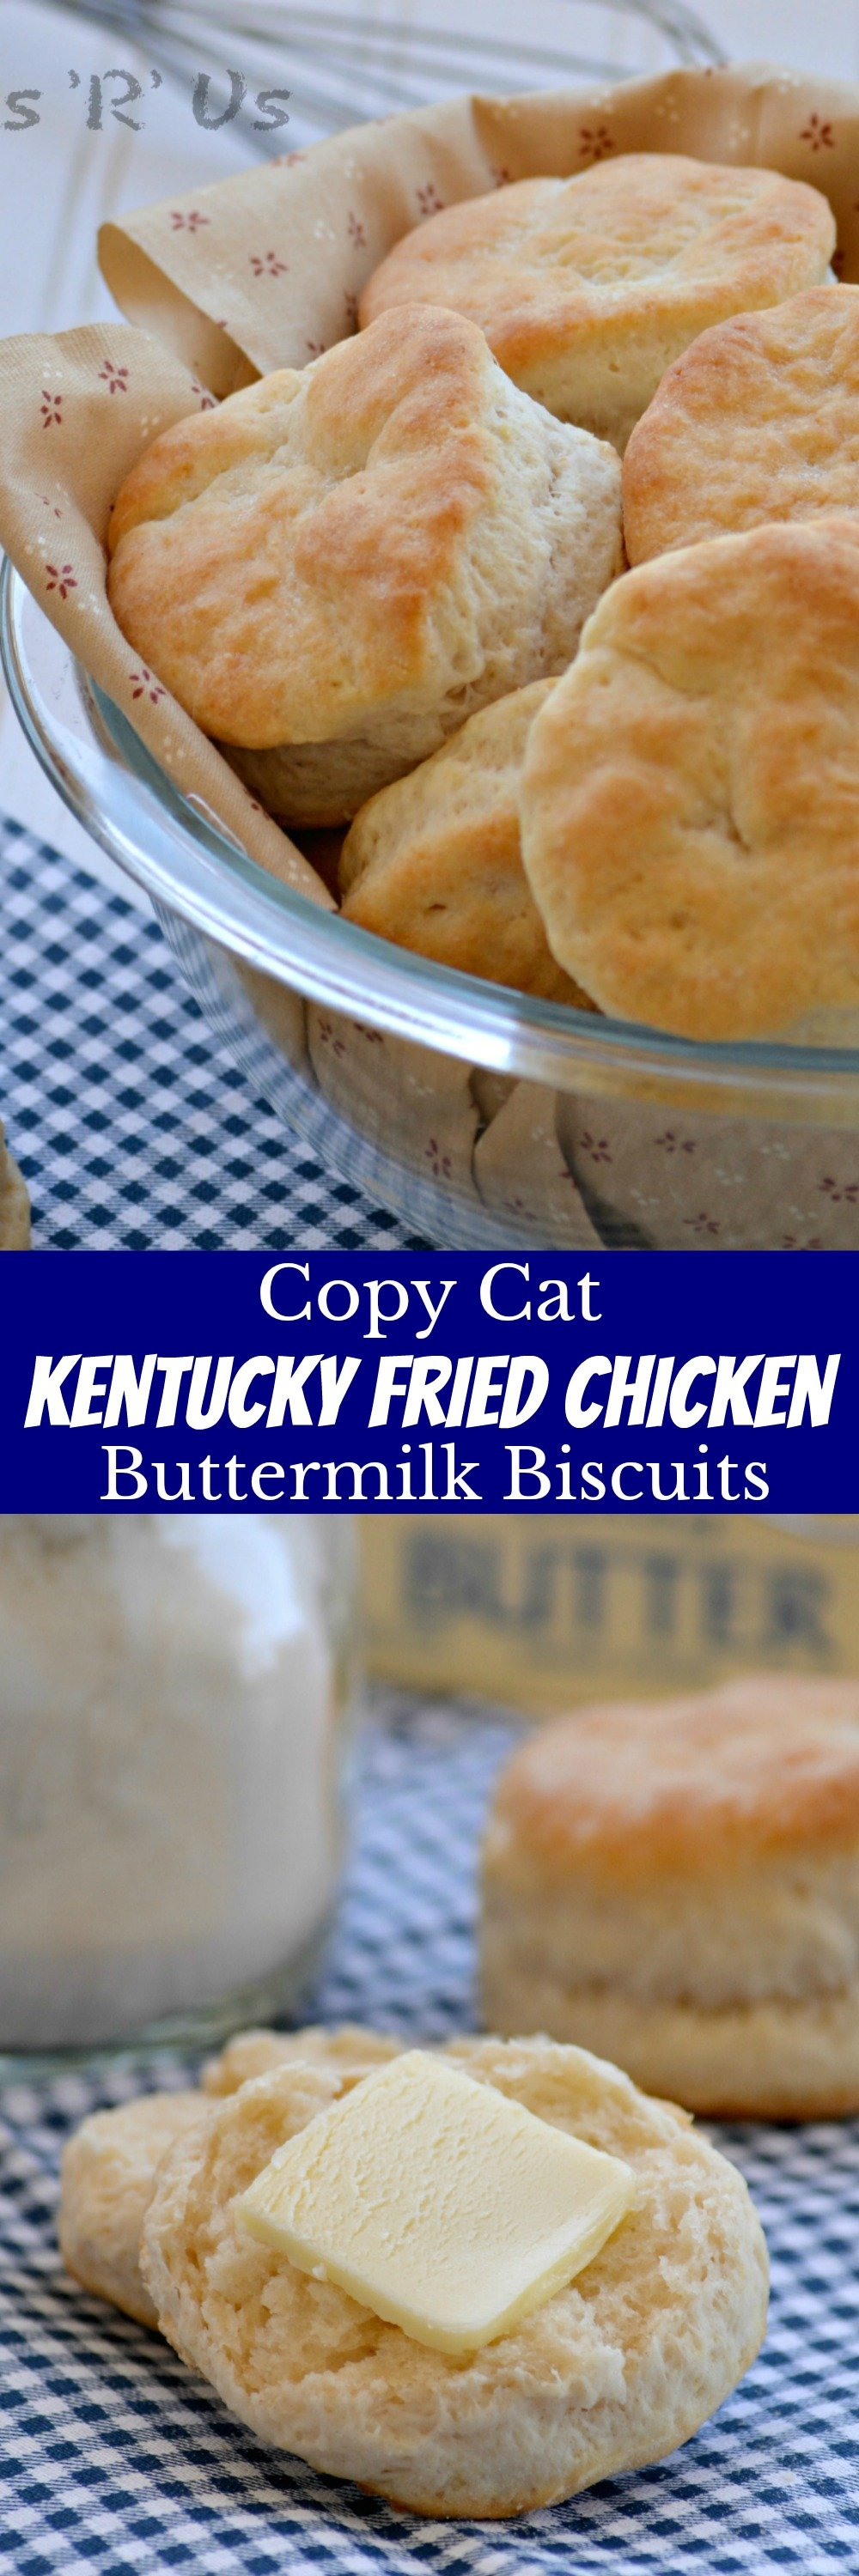 Everyone loves a good biscuit, but in the South we have a special affinity for them. Don't wait to get your biscuit game on, because you don't want to miss out on these! With a golden, buttery crisp on the outside and flaky soft inside the layers that just melt in your mouth these Copy Cat KFC Biscuits are the only buttermilk biscuit recipe you'll ever want or need.